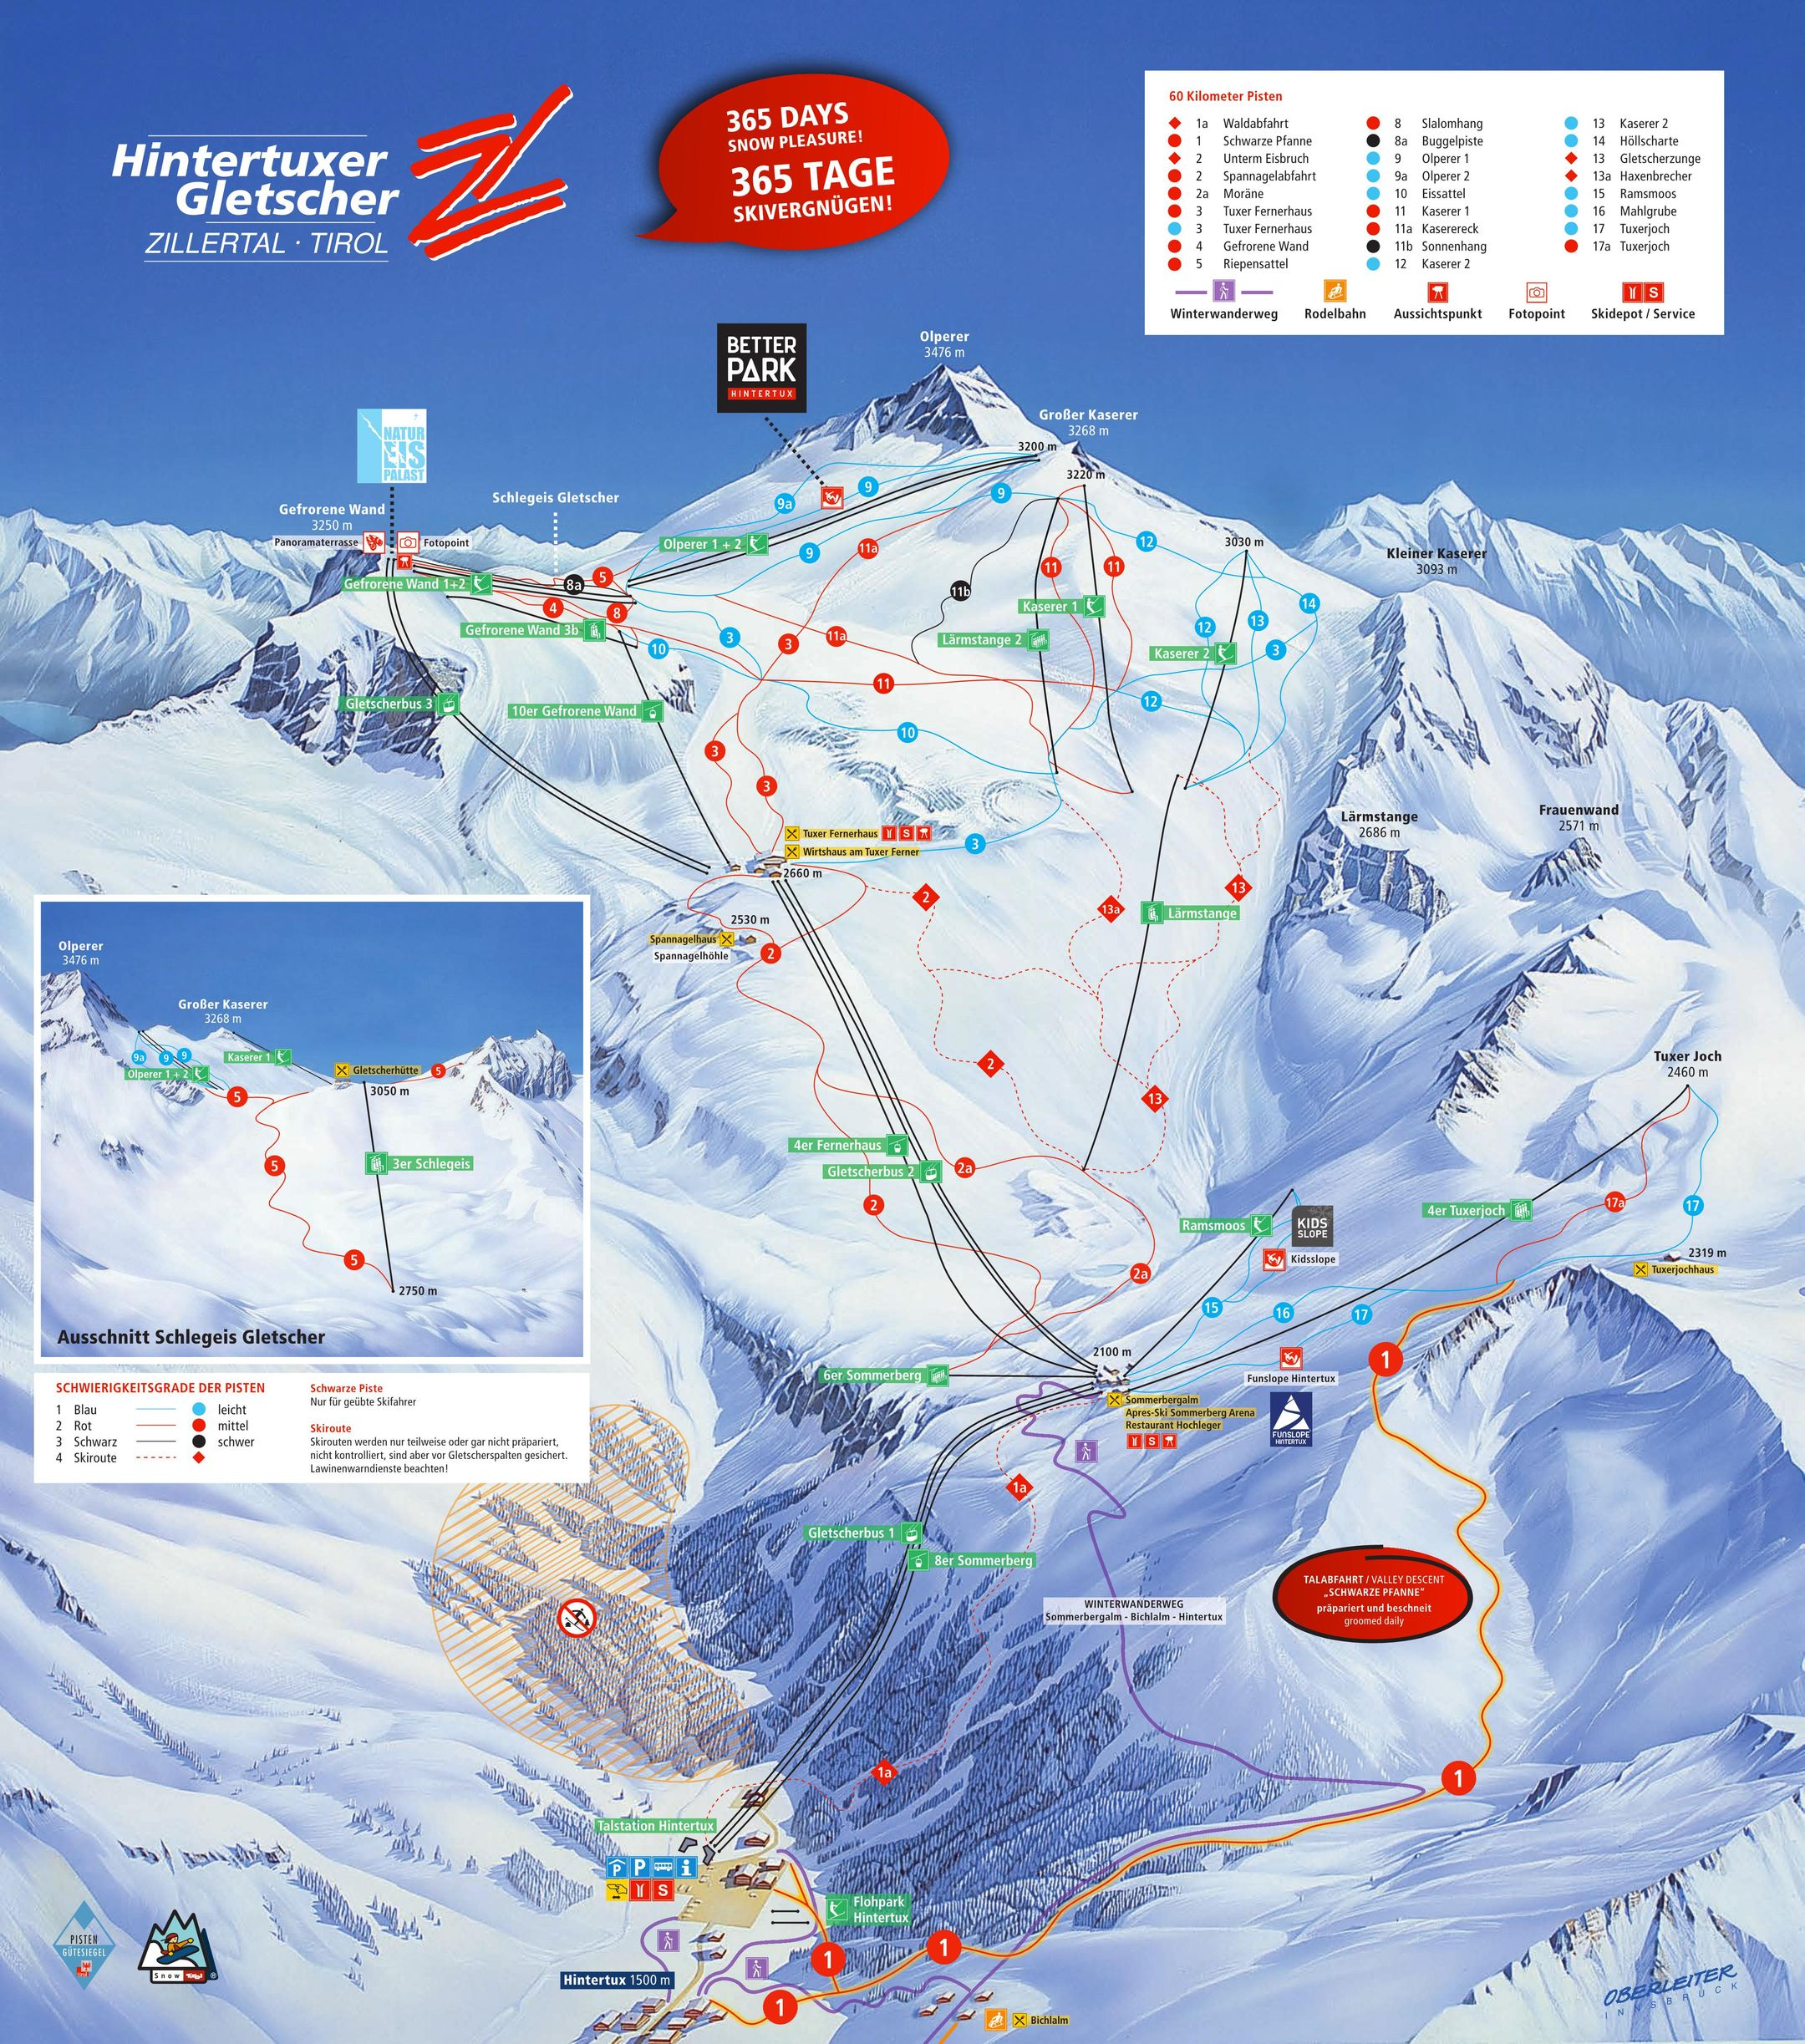 Hintertux Glacier ski-resort-trail-map Austria ripatrip